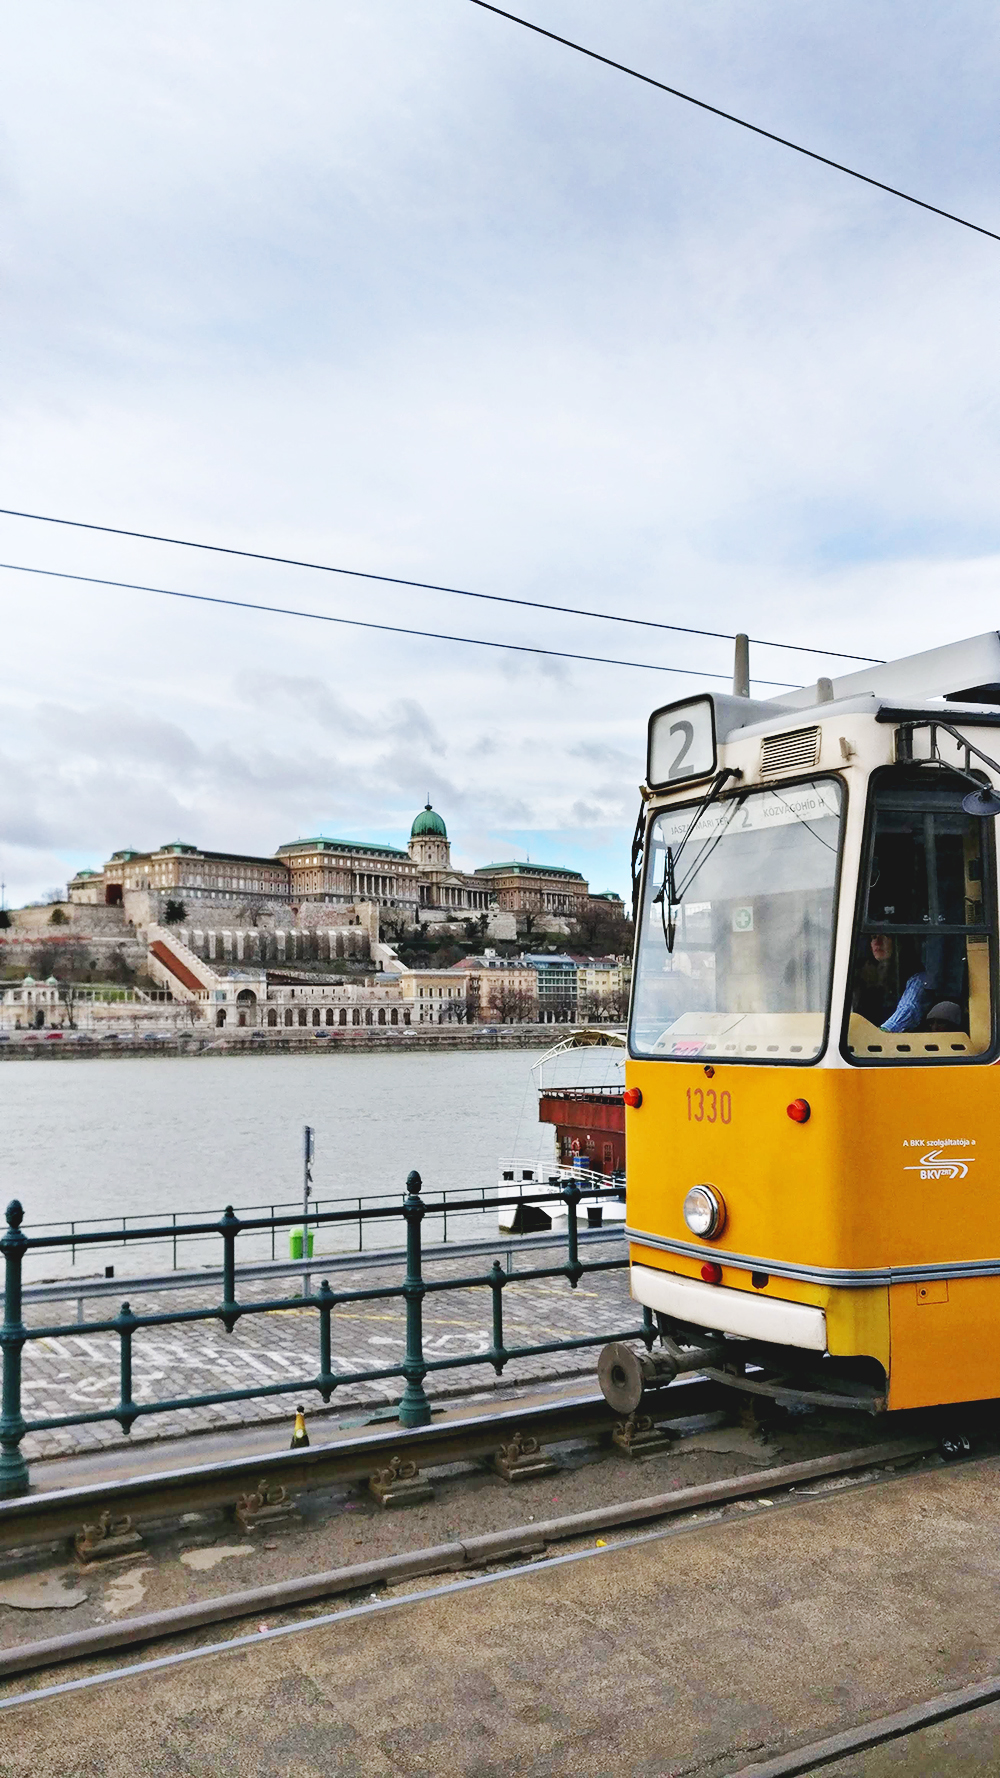 Tram 2, the tourist sightseeing tram - A first-timer's guide to Budapest - Things to know about visiting Budapest, Hungary | Aliz's Wonderland #Budapest #Hungary #travel #travelguide #Budapestguide